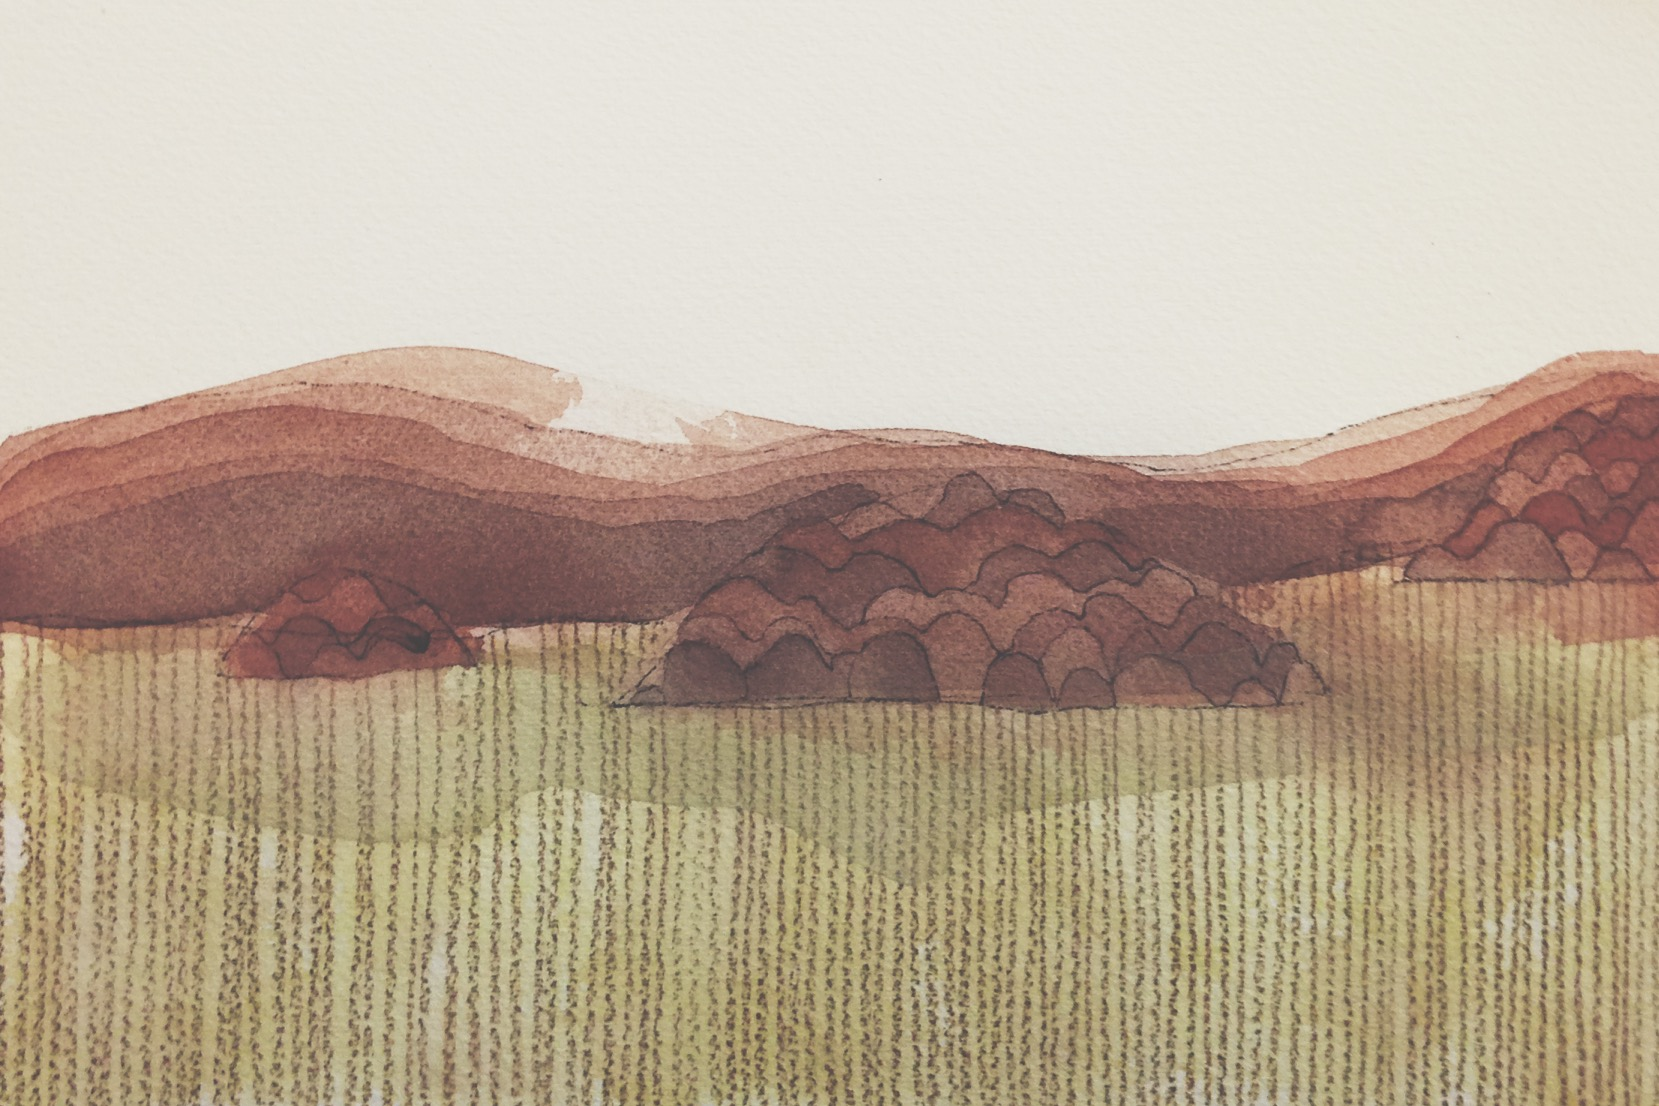 continuing from a drawing i started last night about a field of tall grasses with trees islands jutting out from it.